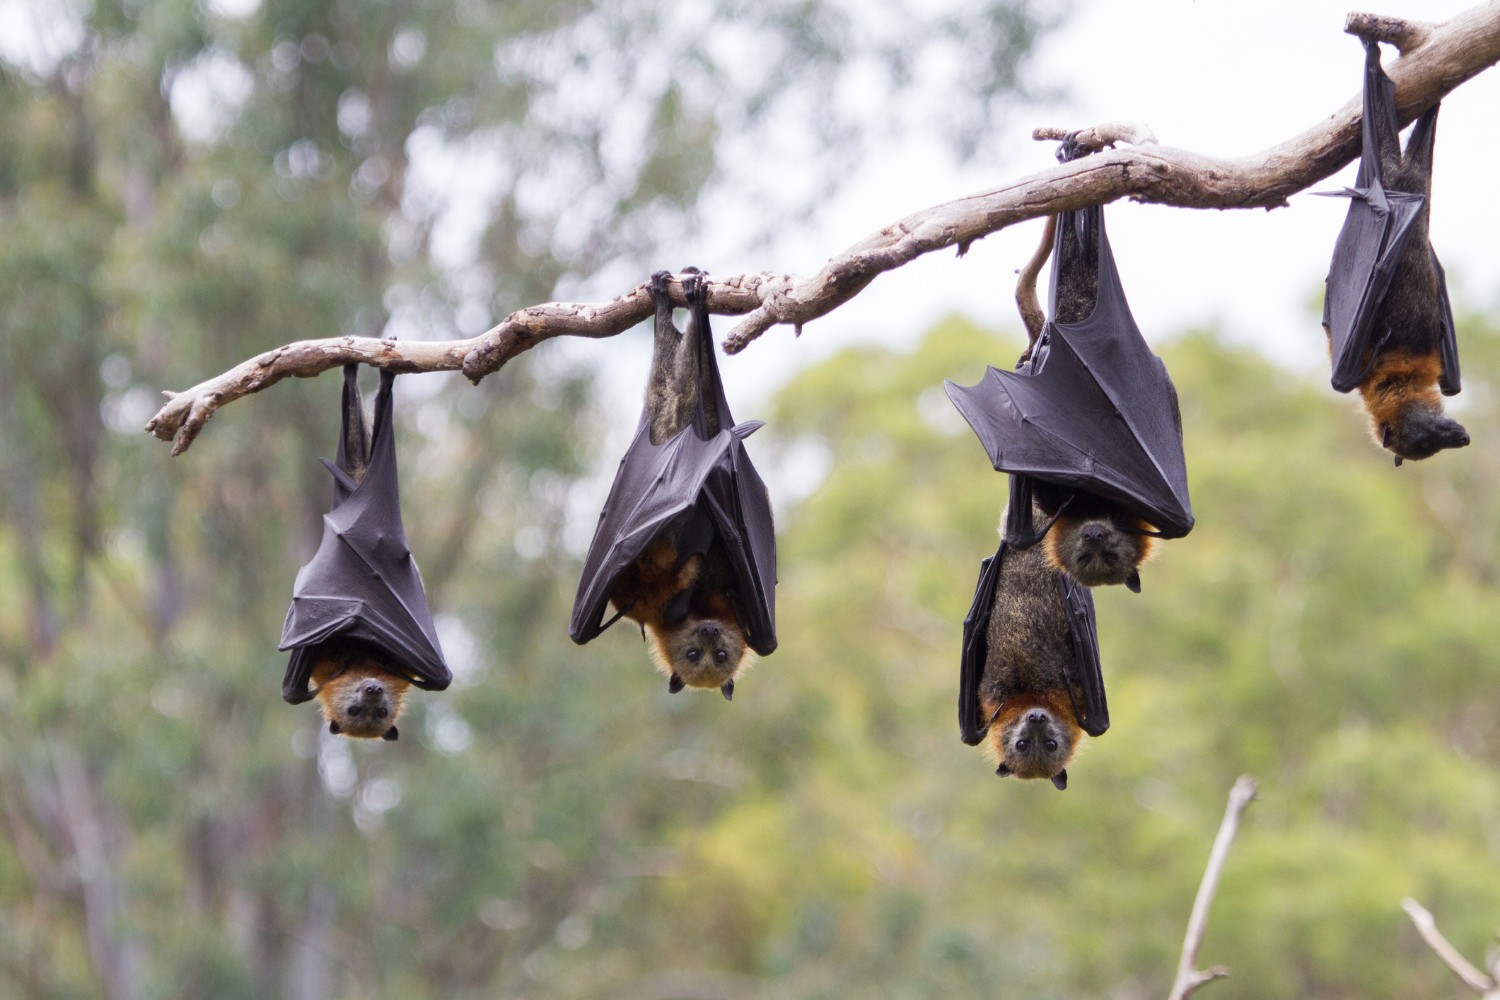 7 of the Most Fascinating Facts About the Lubee Bat Conservancy - Sweetwater Branch Inn